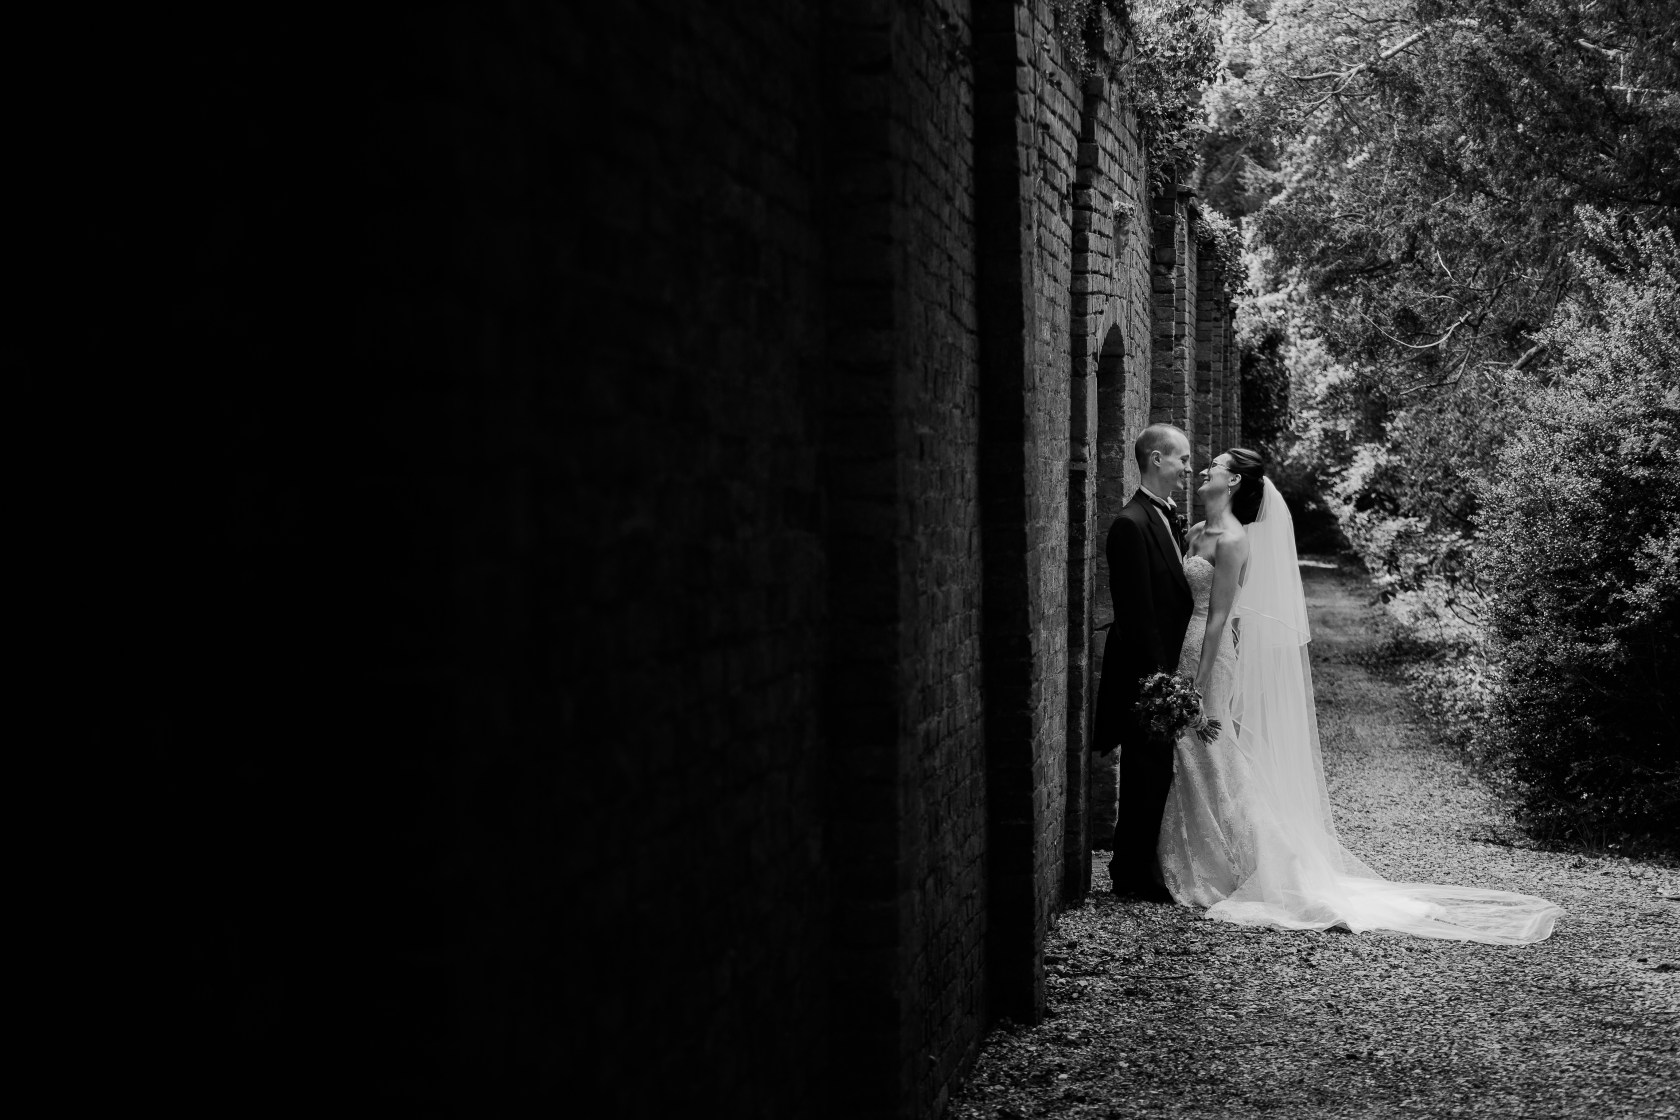 Kelmarsh Hall English Garden Wedding Photographer Relaxed Candid Natural Light Airy